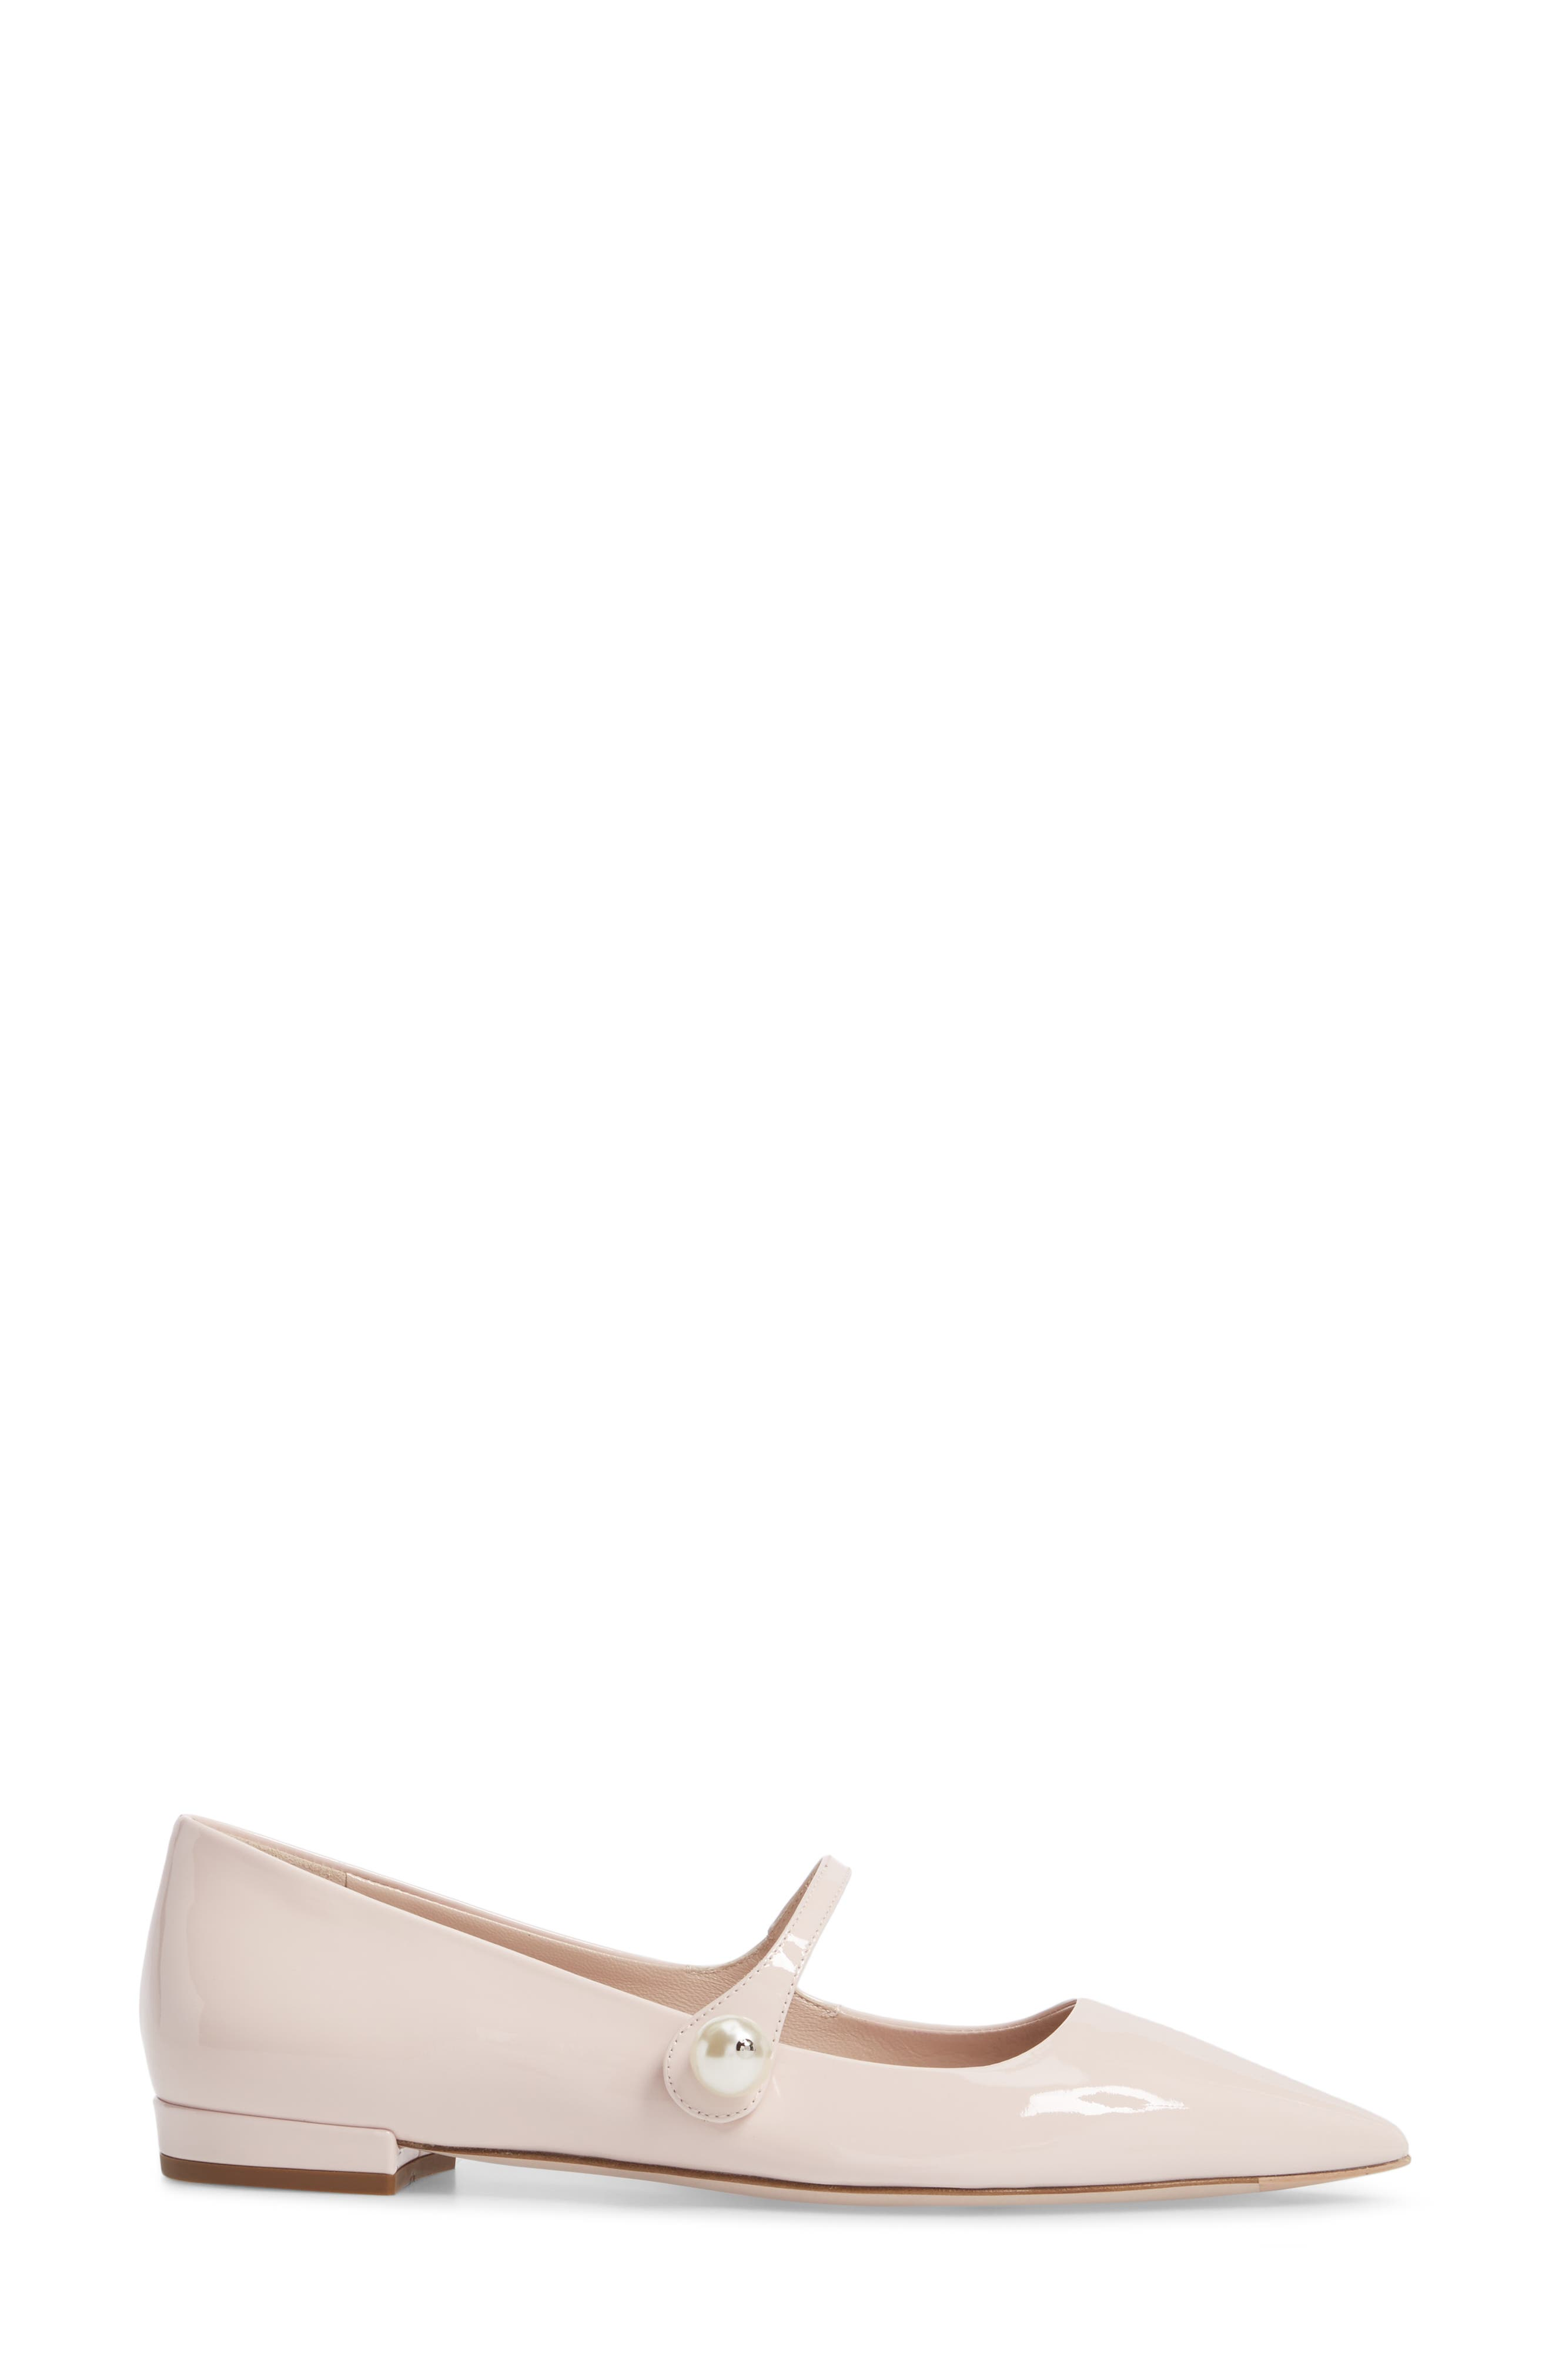 Pearl Mary Jane Flat,                             Alternate thumbnail 3, color,                             LIGHT PINK